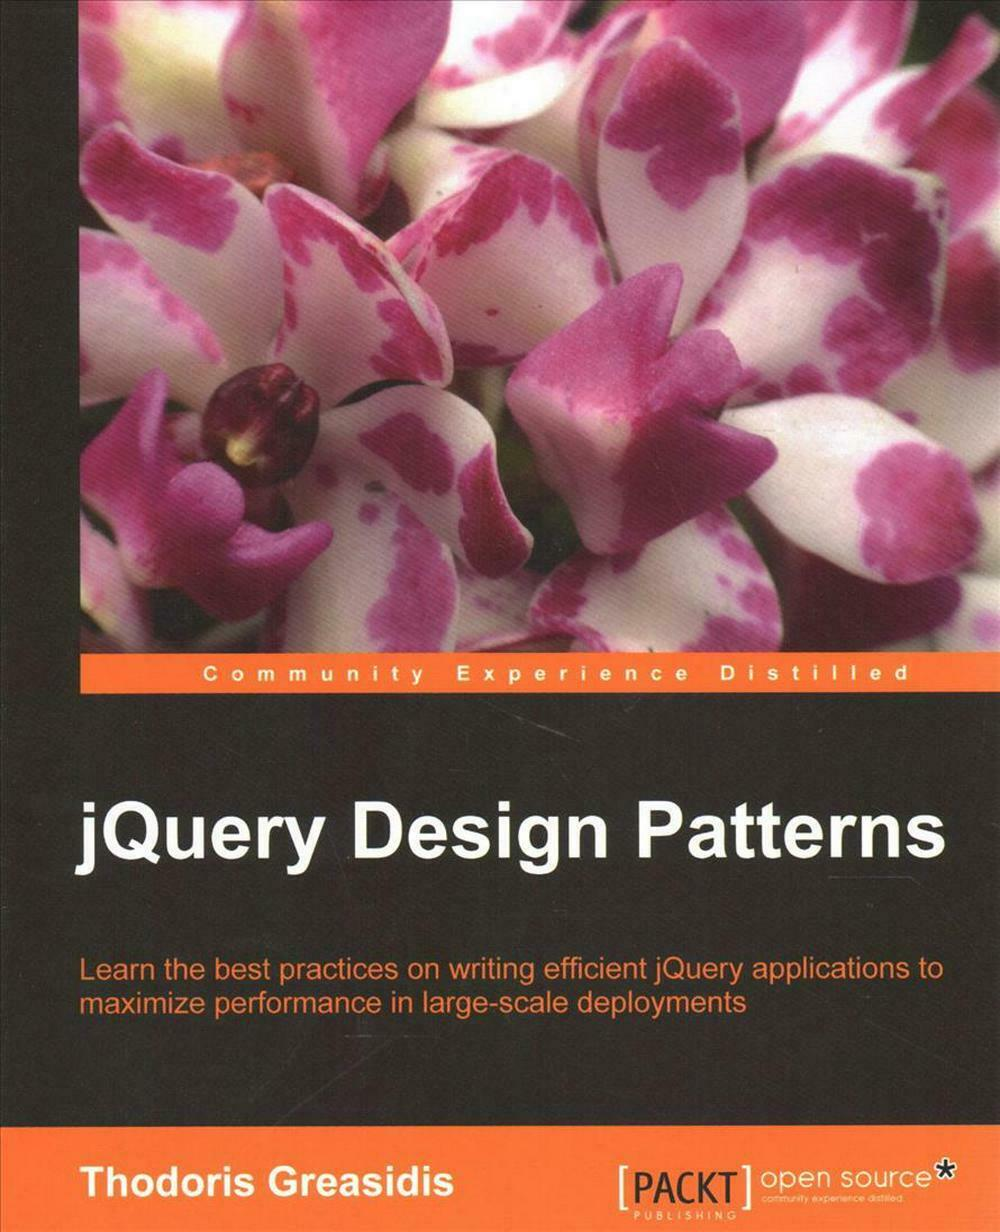 jQuery Design Patterns by Thodoris Greasidis (English) Paperback Book Free Shipp |